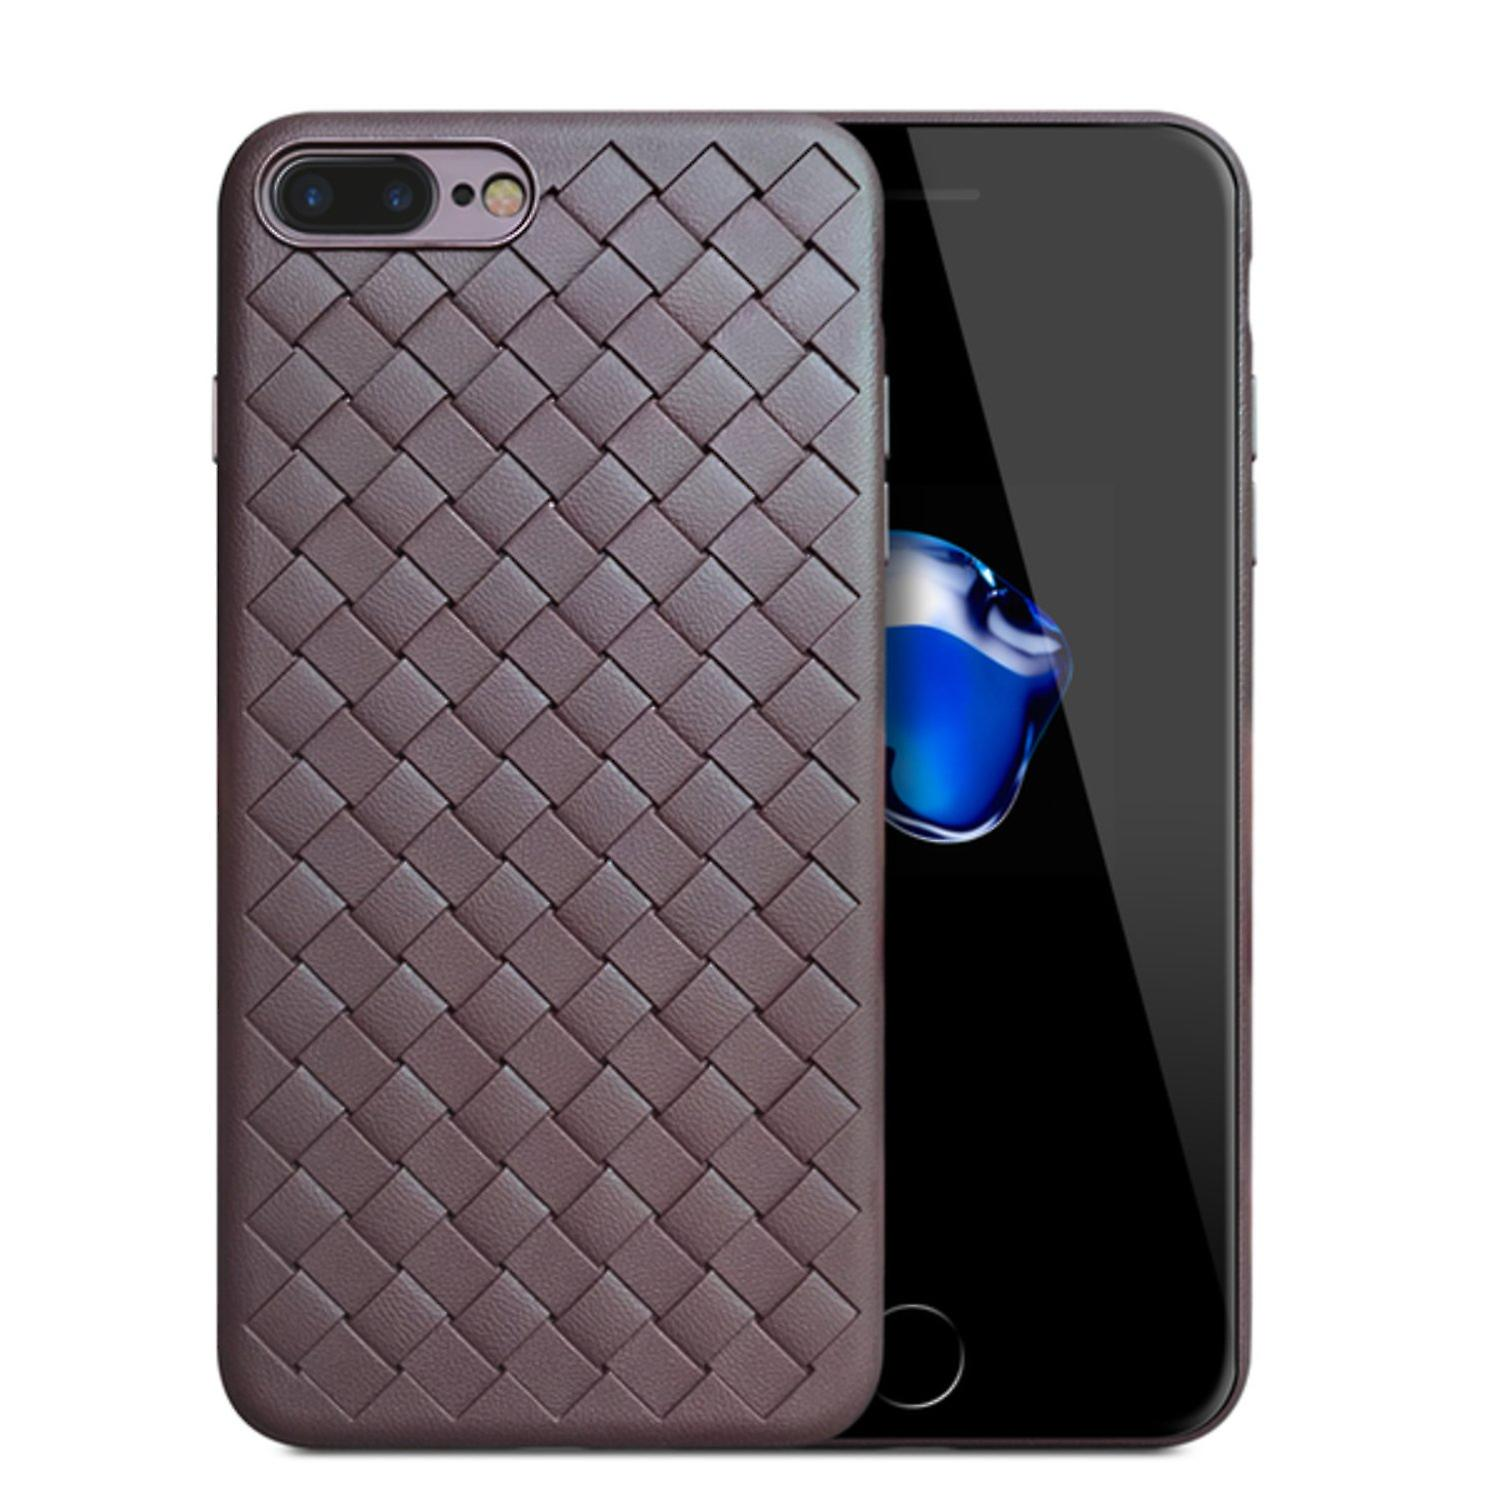 Woven design case for iPhone 8 Plus